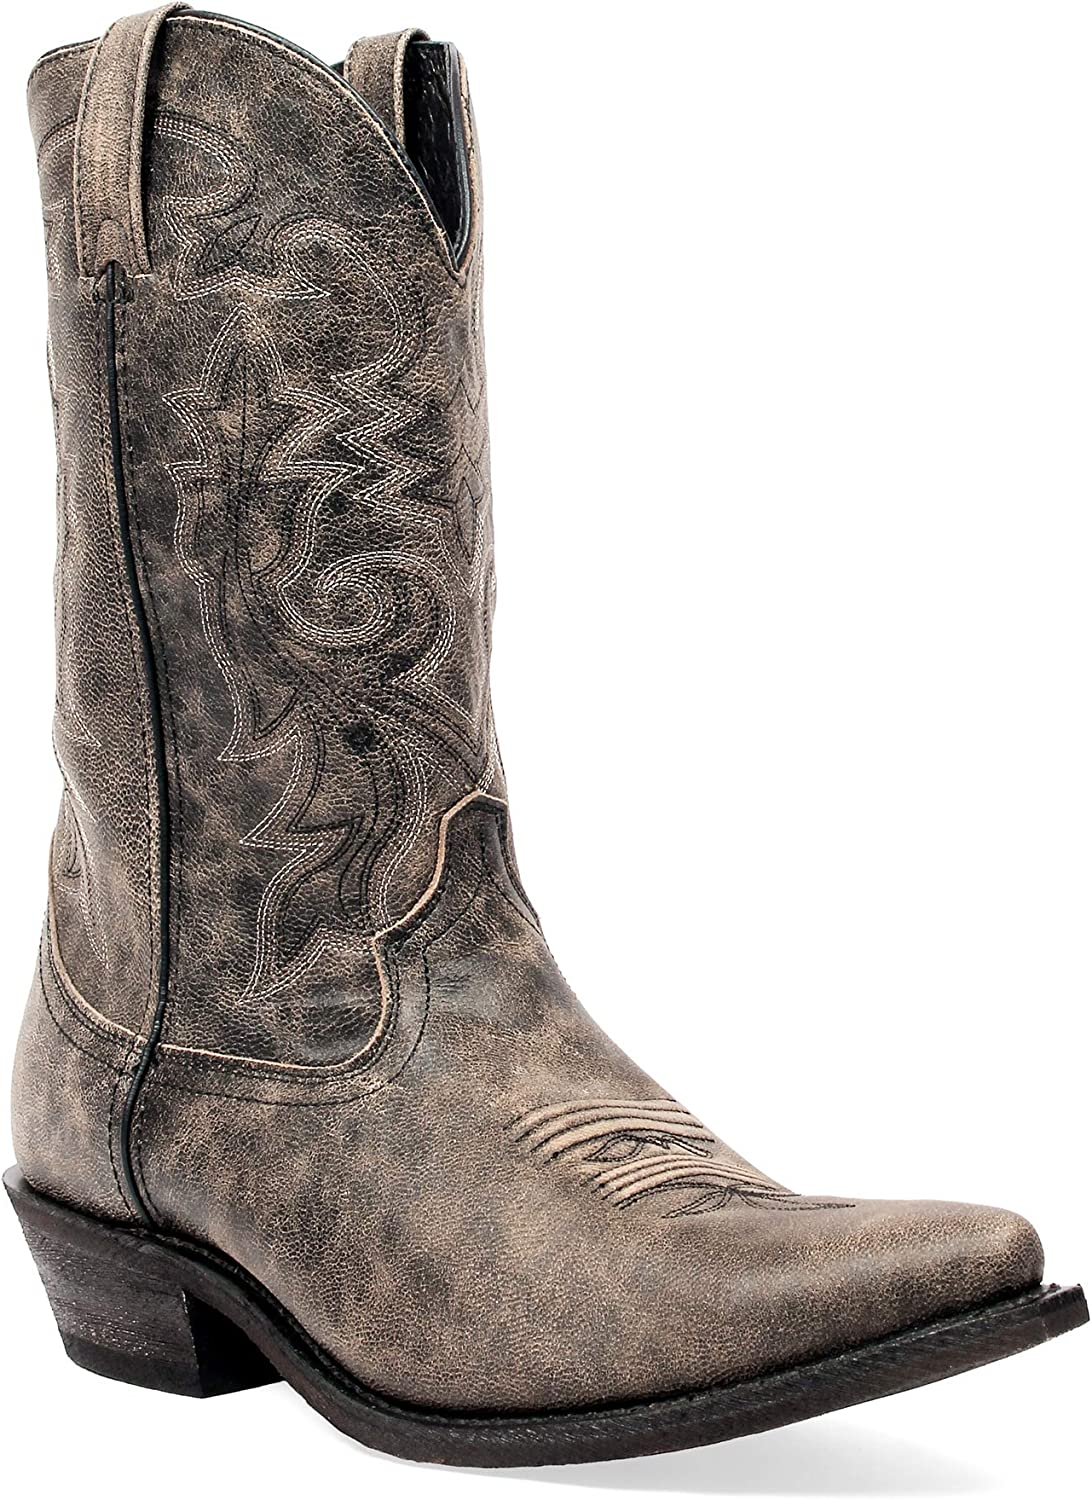 Masterson Men's Snip Oklahoma City Mall Department store Toe Western Cowboy Boot